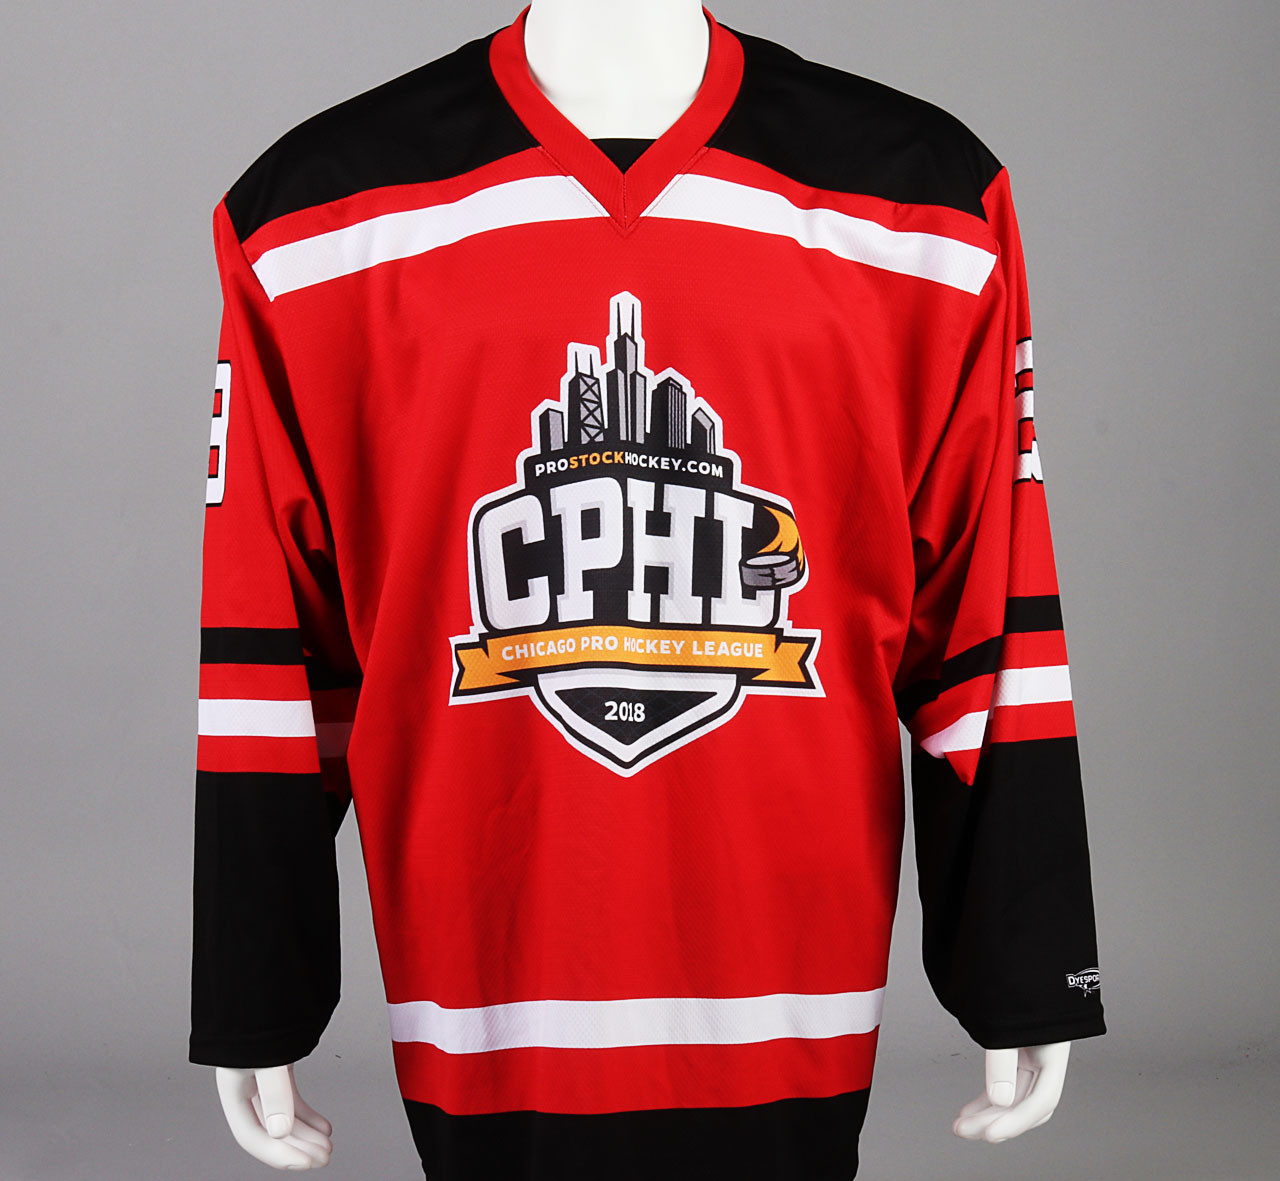 Large Red Chicago Pro Hockey League Jersey - Spencer Stastney - Pro ... a8027f82302